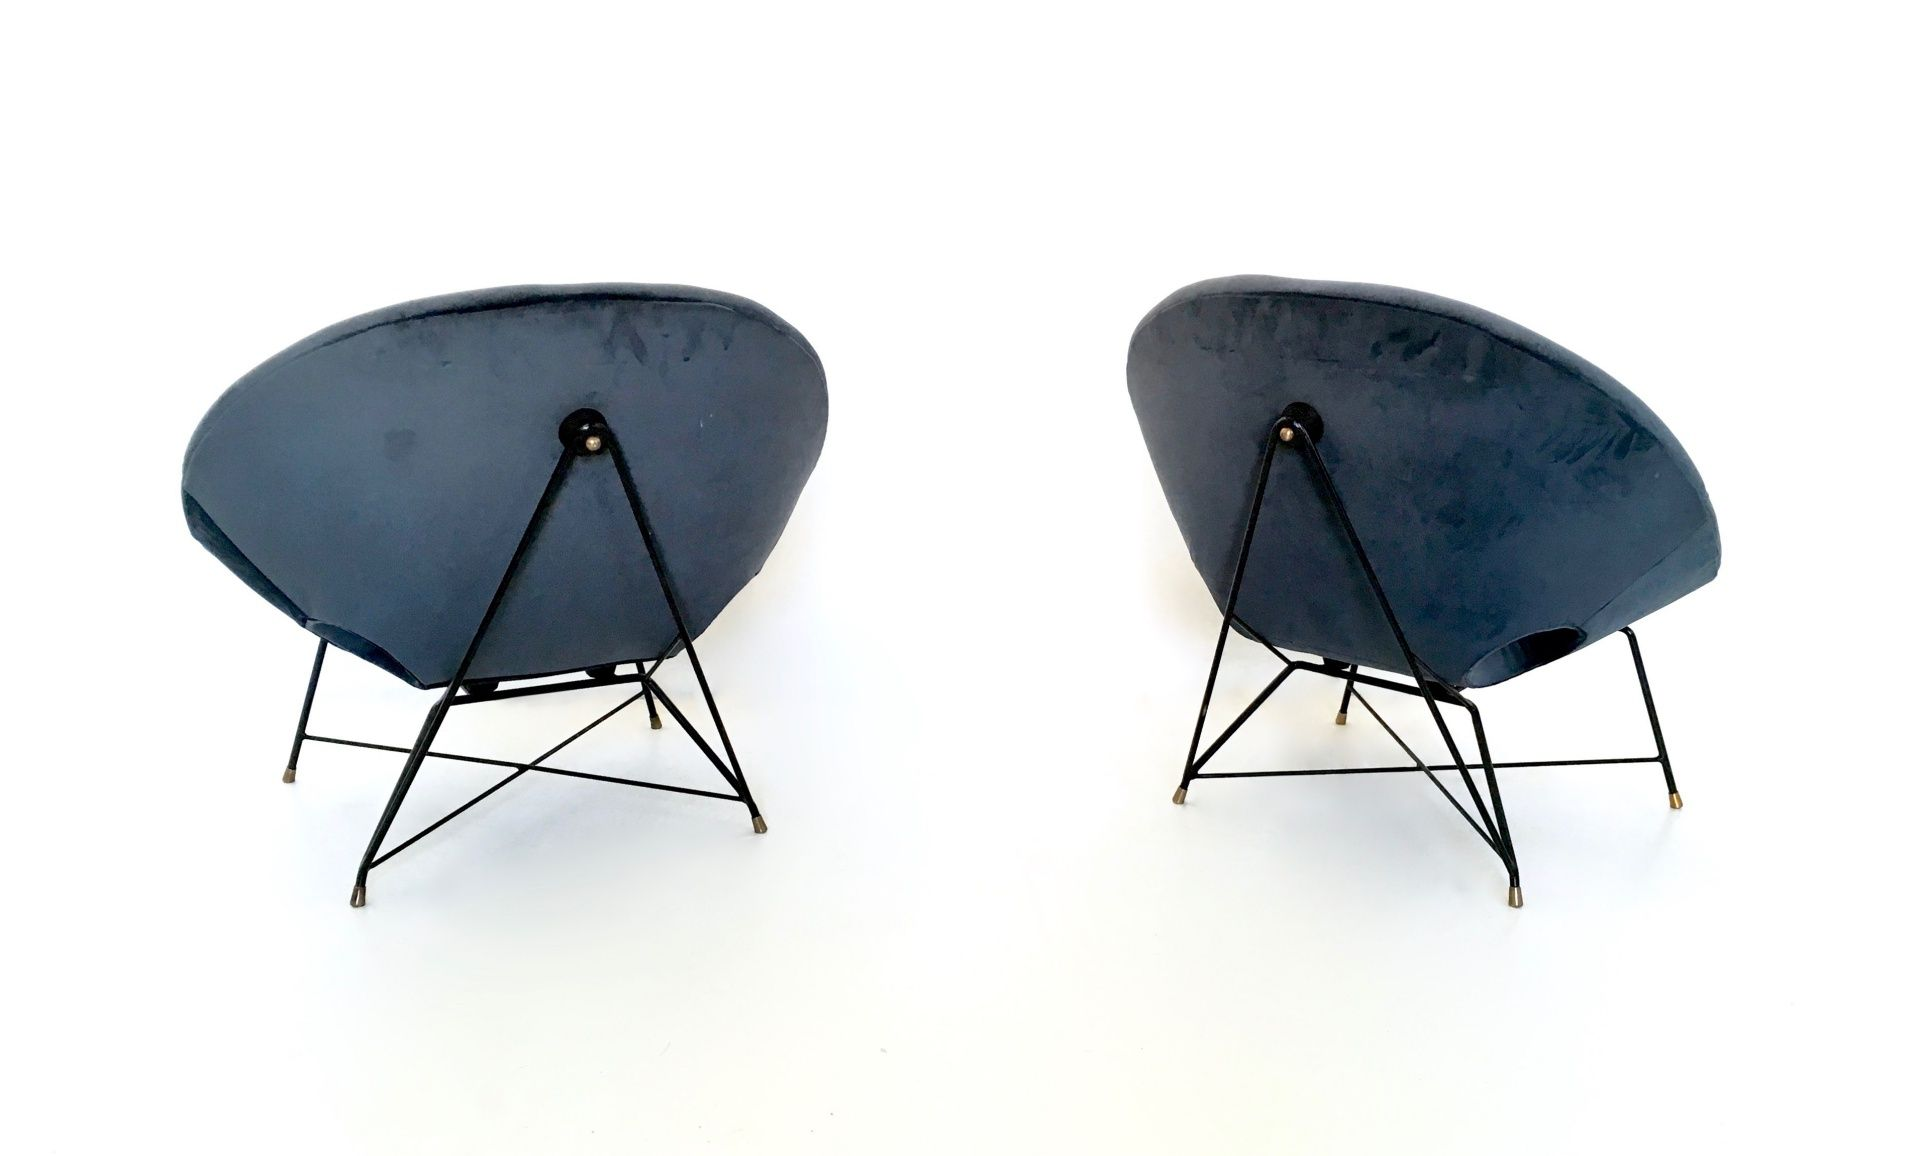 Blue Velvet Lounge Chairs by Augusto Bozzi for Saporiti 1950s